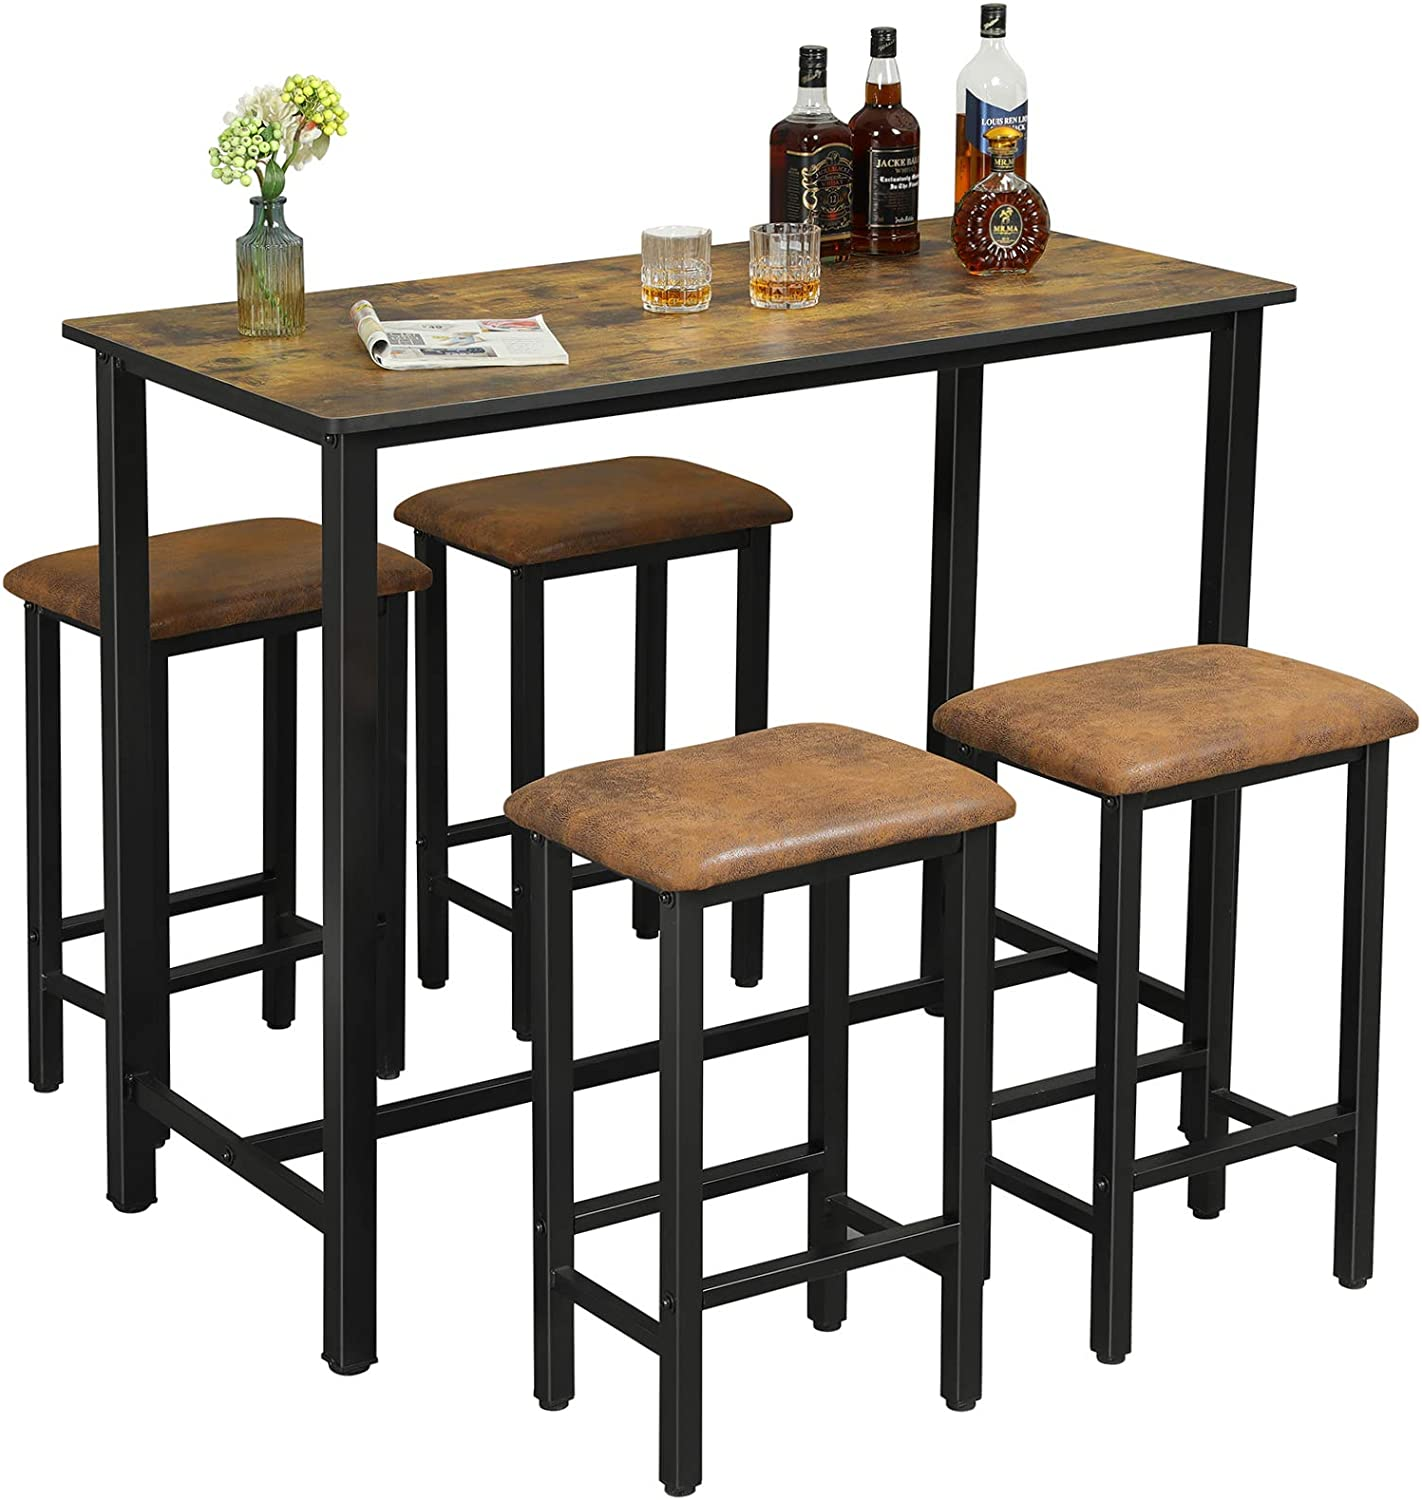 Dictac Bar Table Set, Counter High Dining Room Table Sets